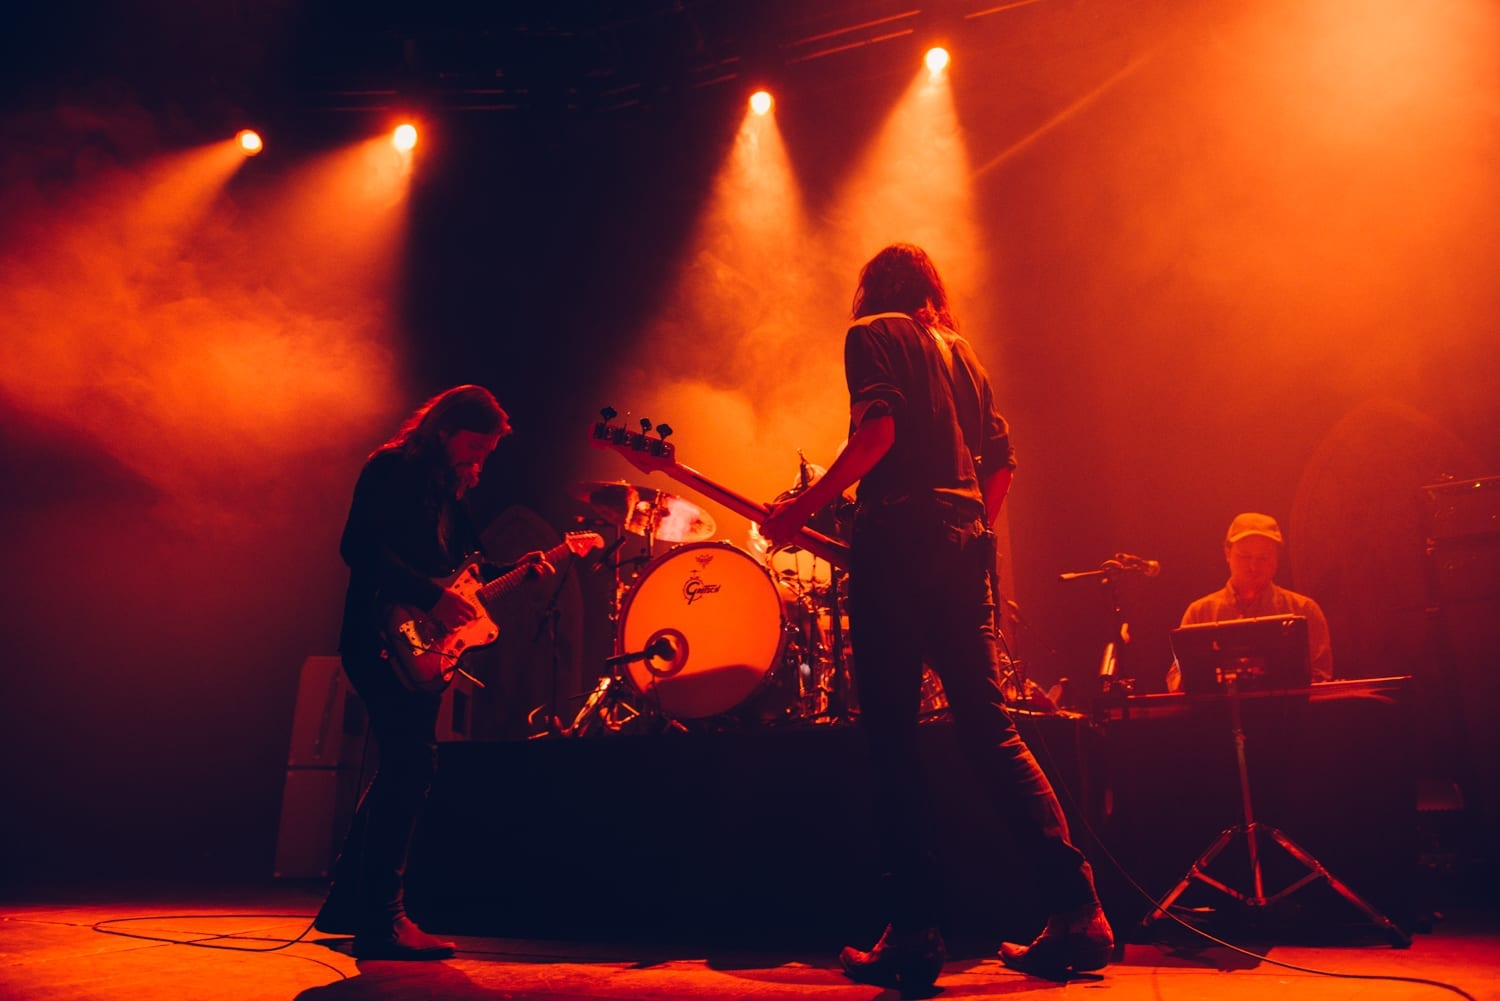 Live Review: Band of Skulls // Roundhouse, London – 26.10.16